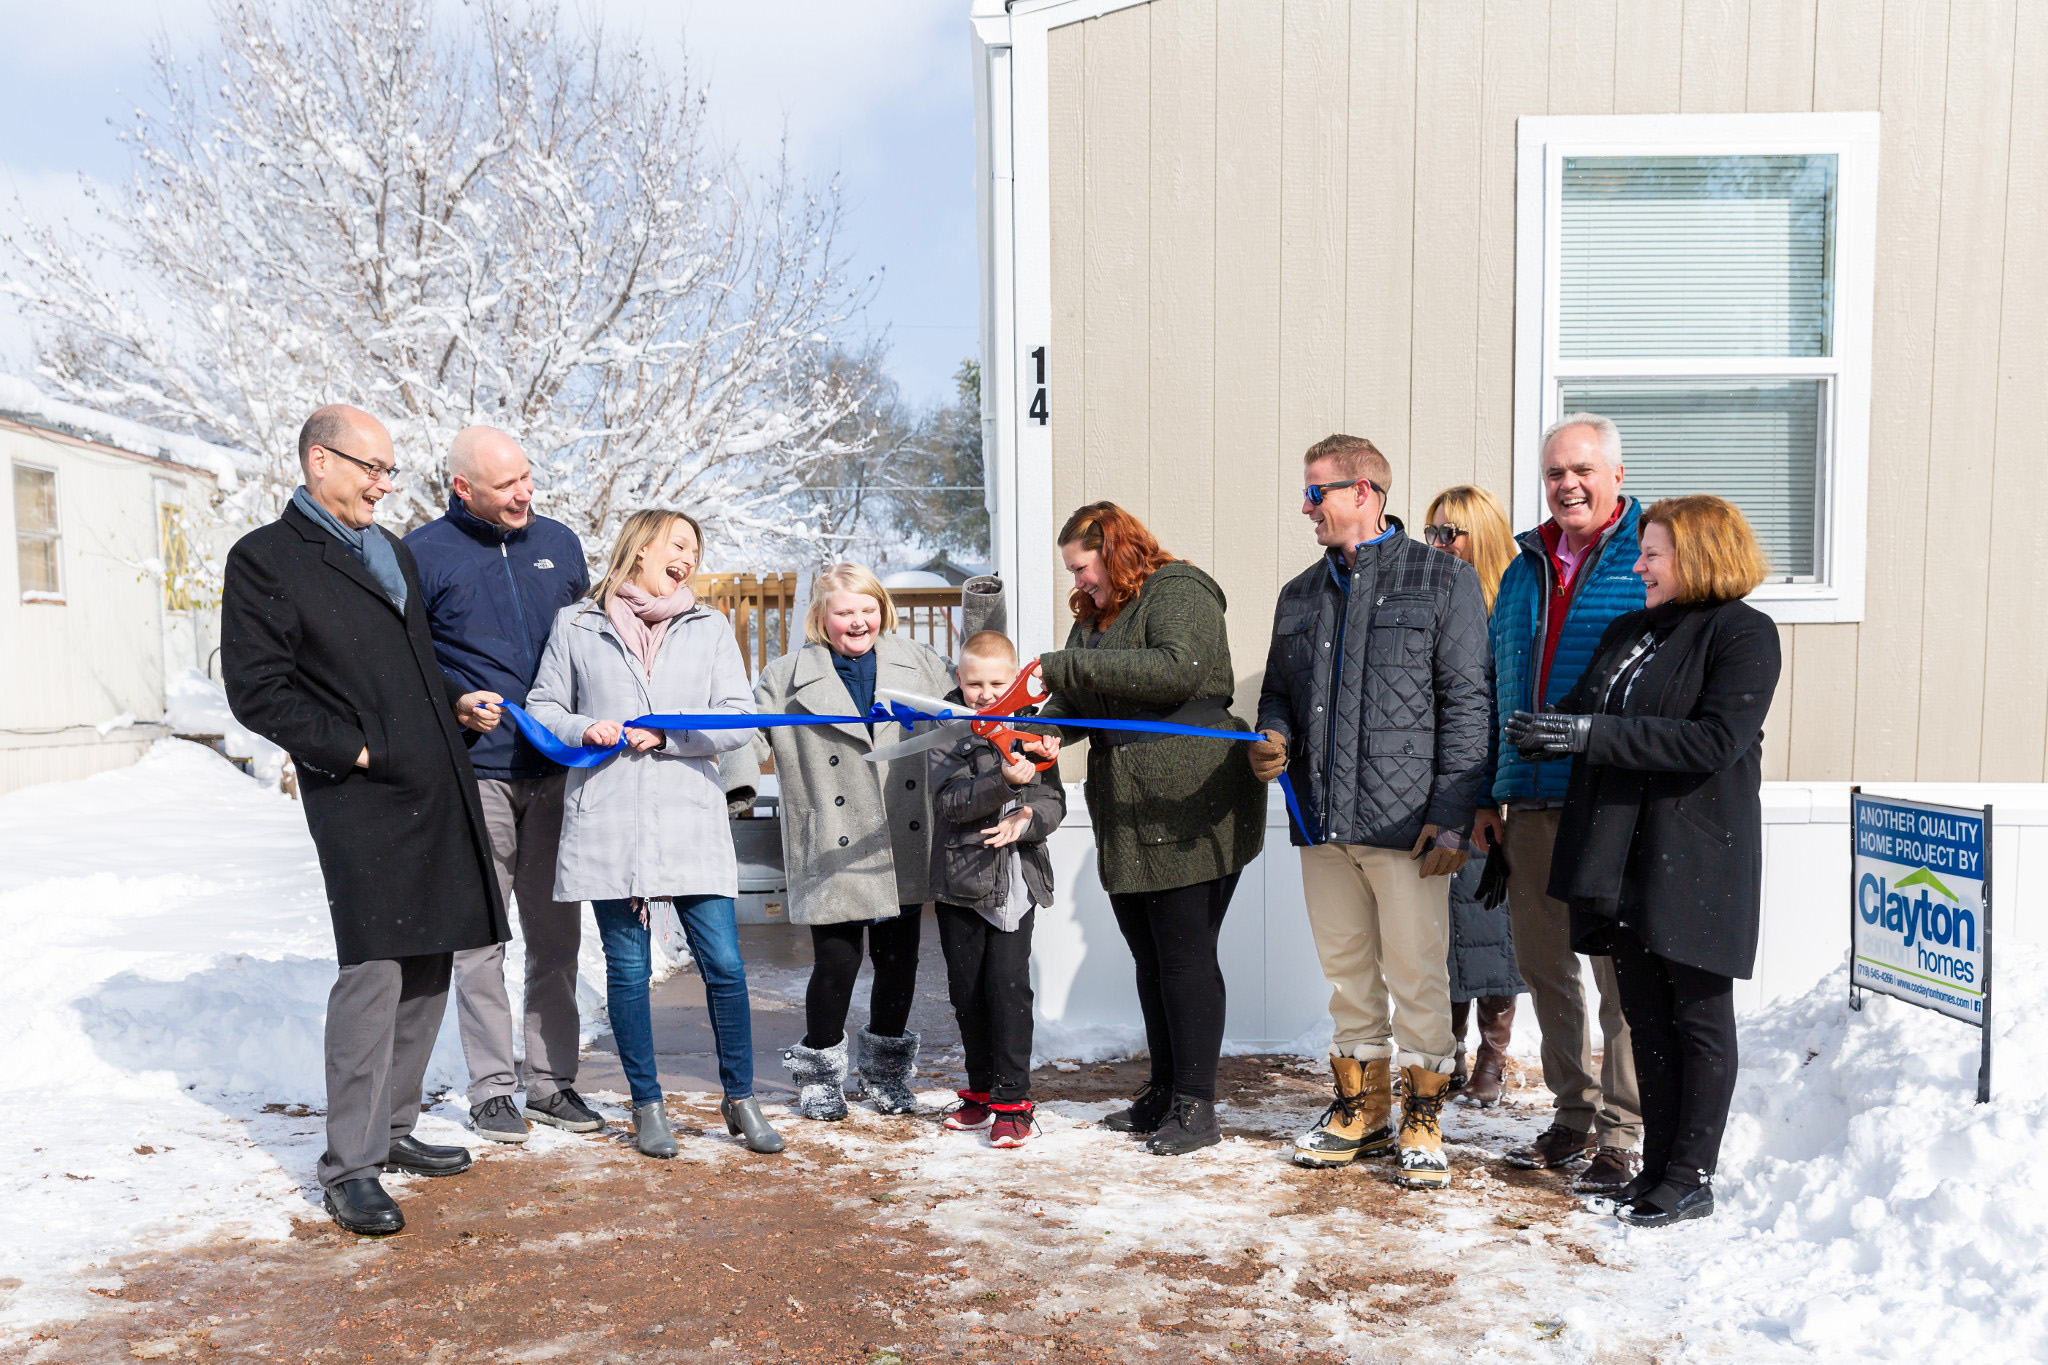 In October 2019, a ribbon-cutting ceremony marked the celebration of the Warren family's milestone as new homeowners.